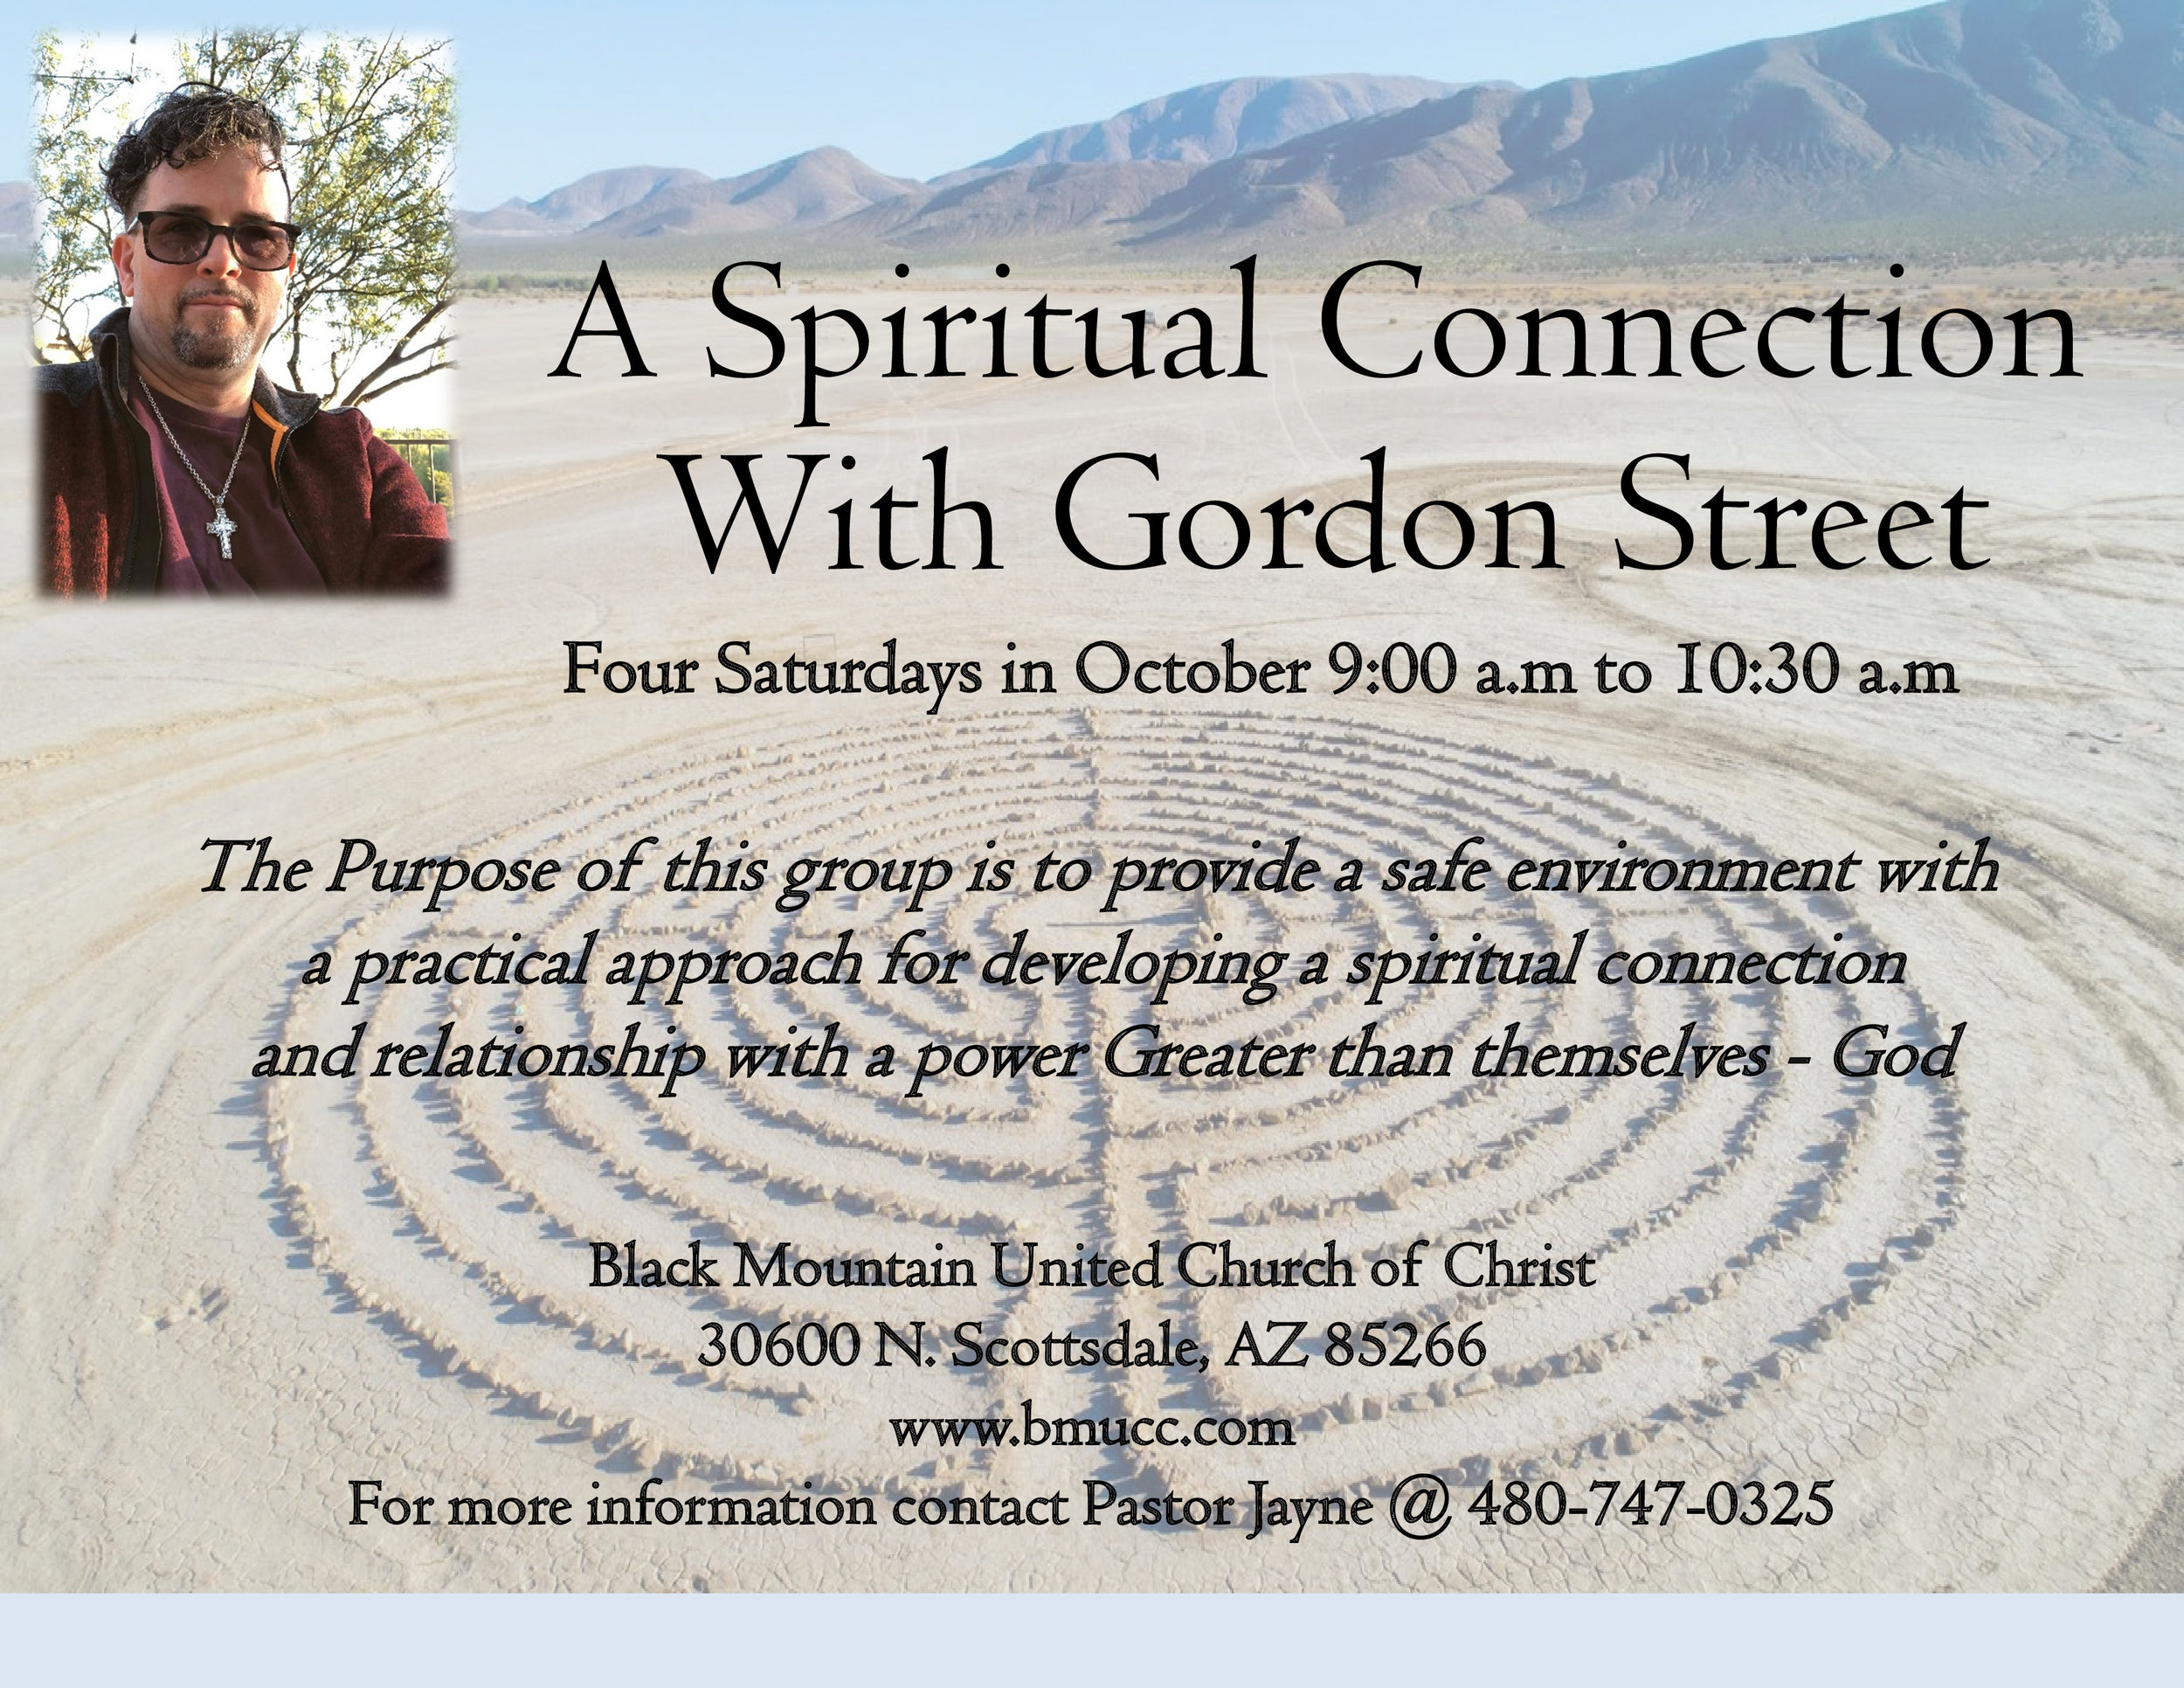 Gordons Spititual Connection Flyer.jpg